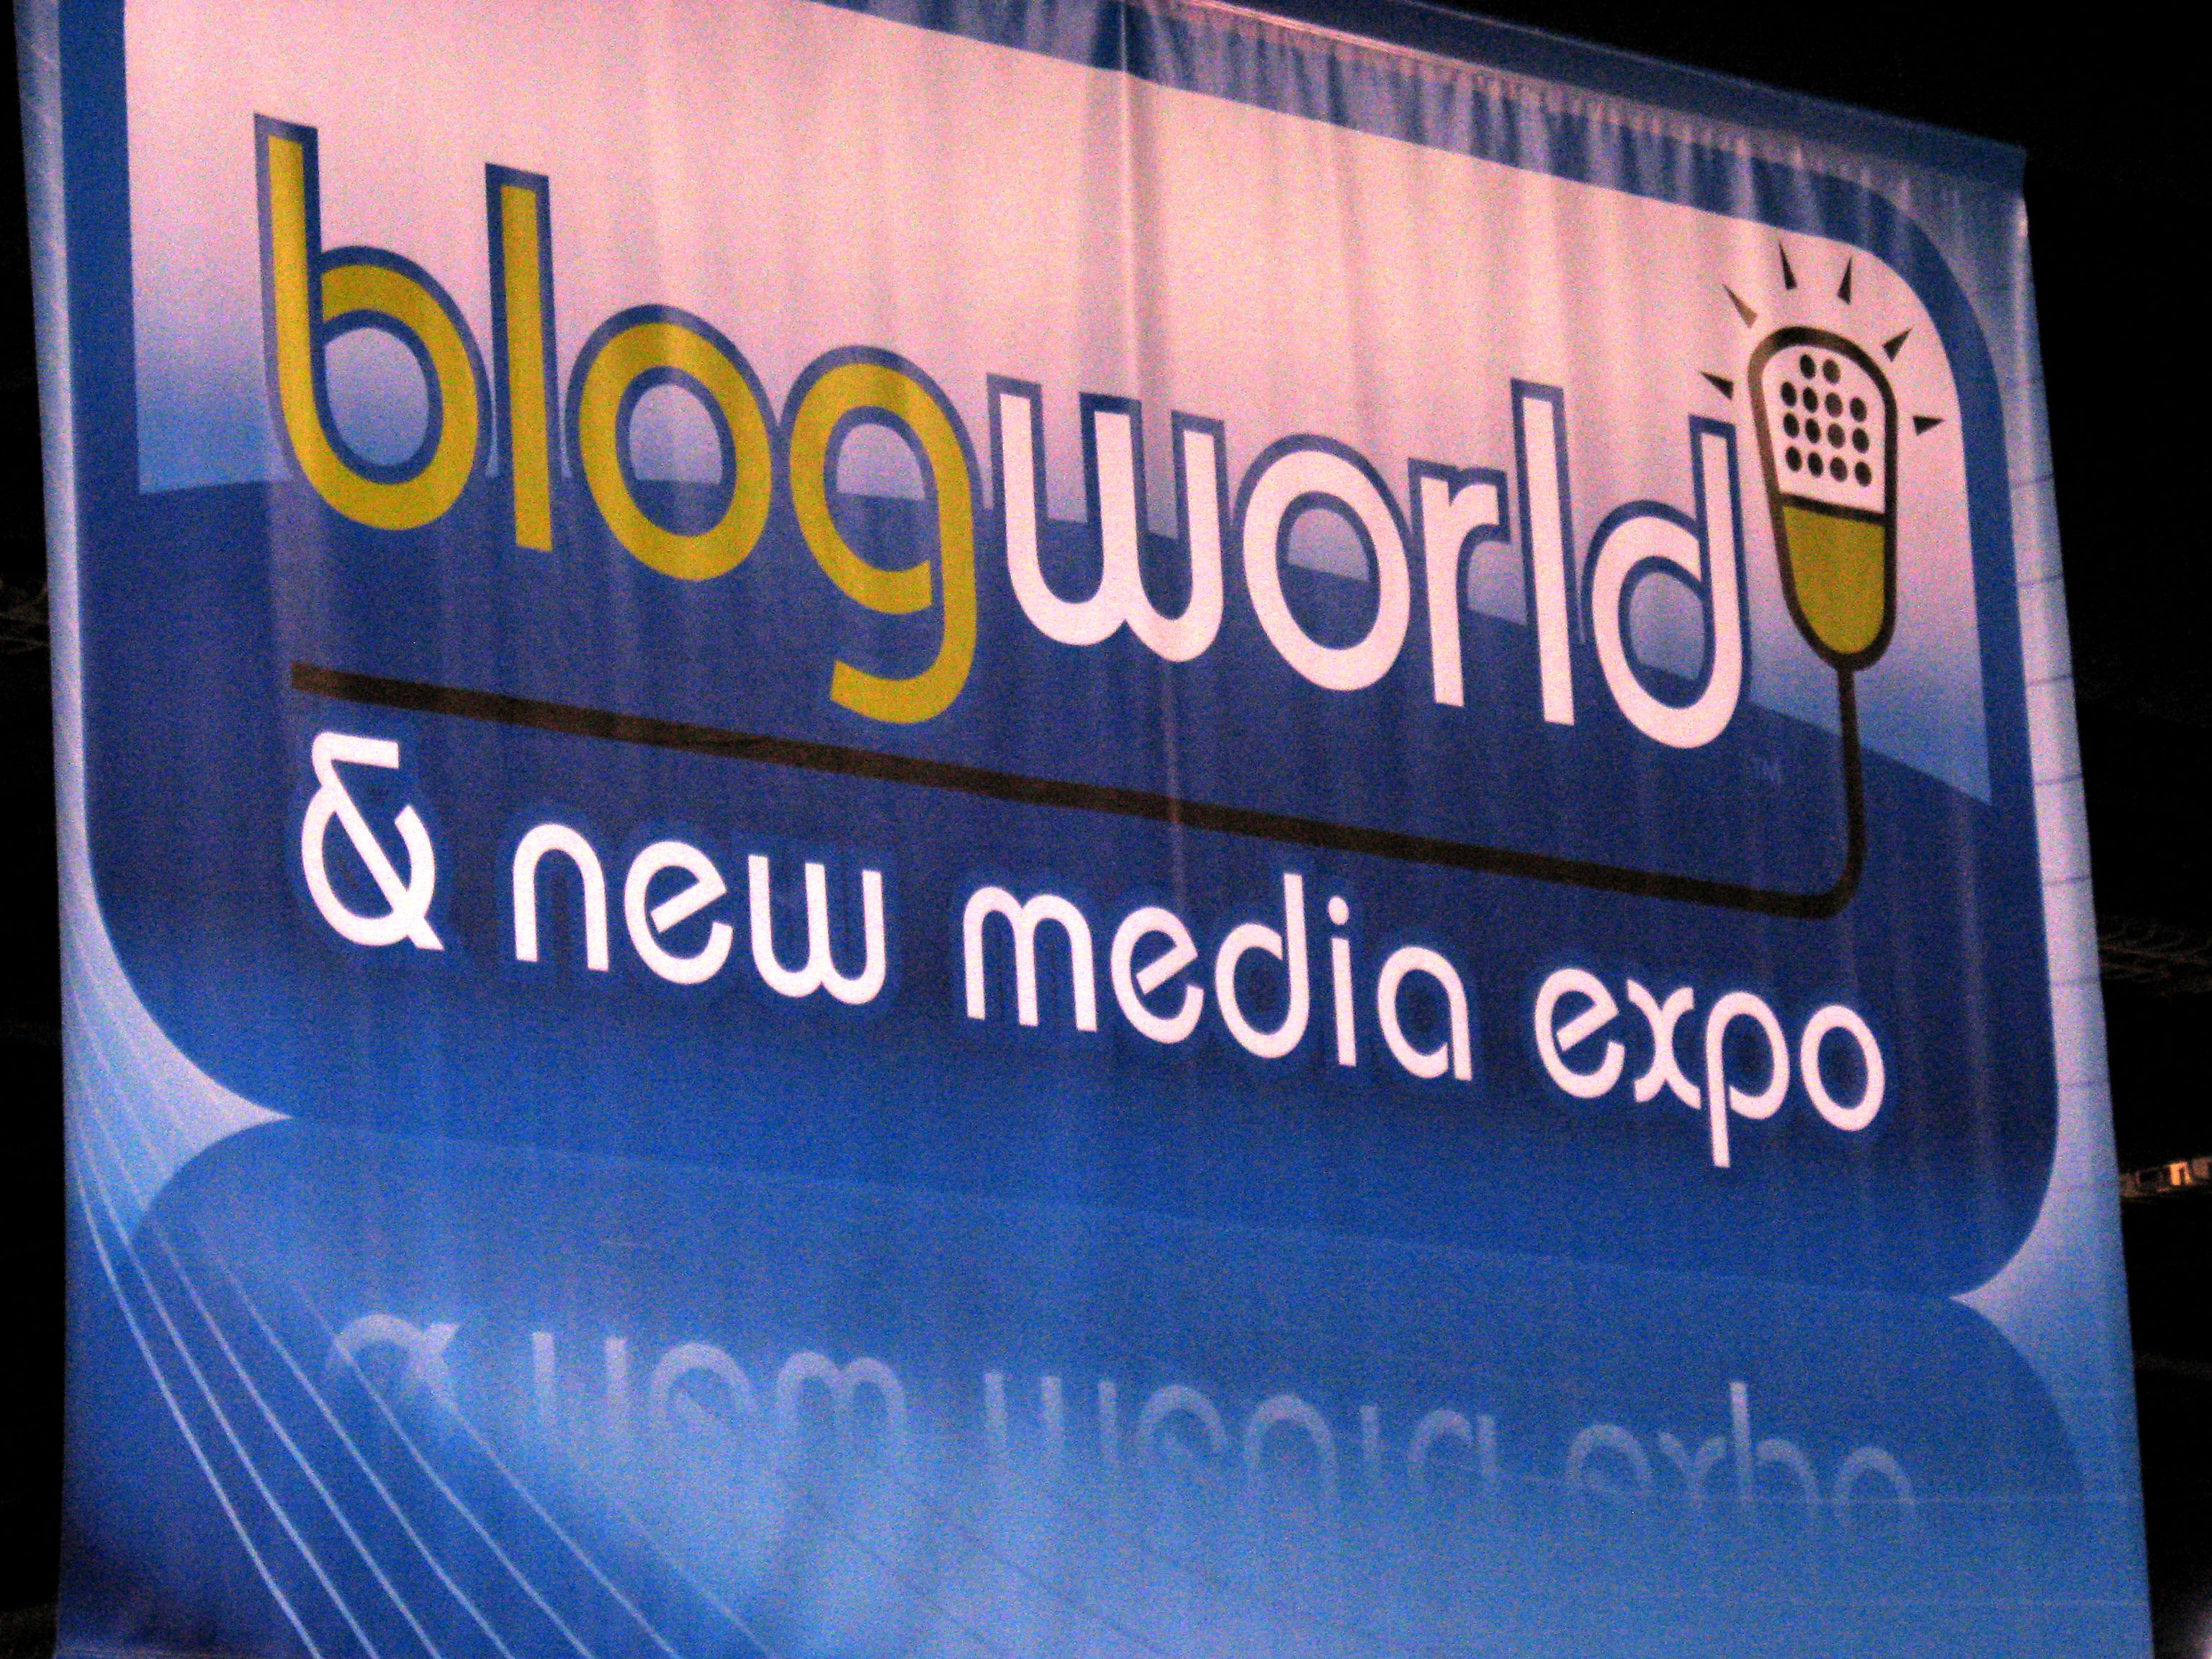 Blog World New Media Expo